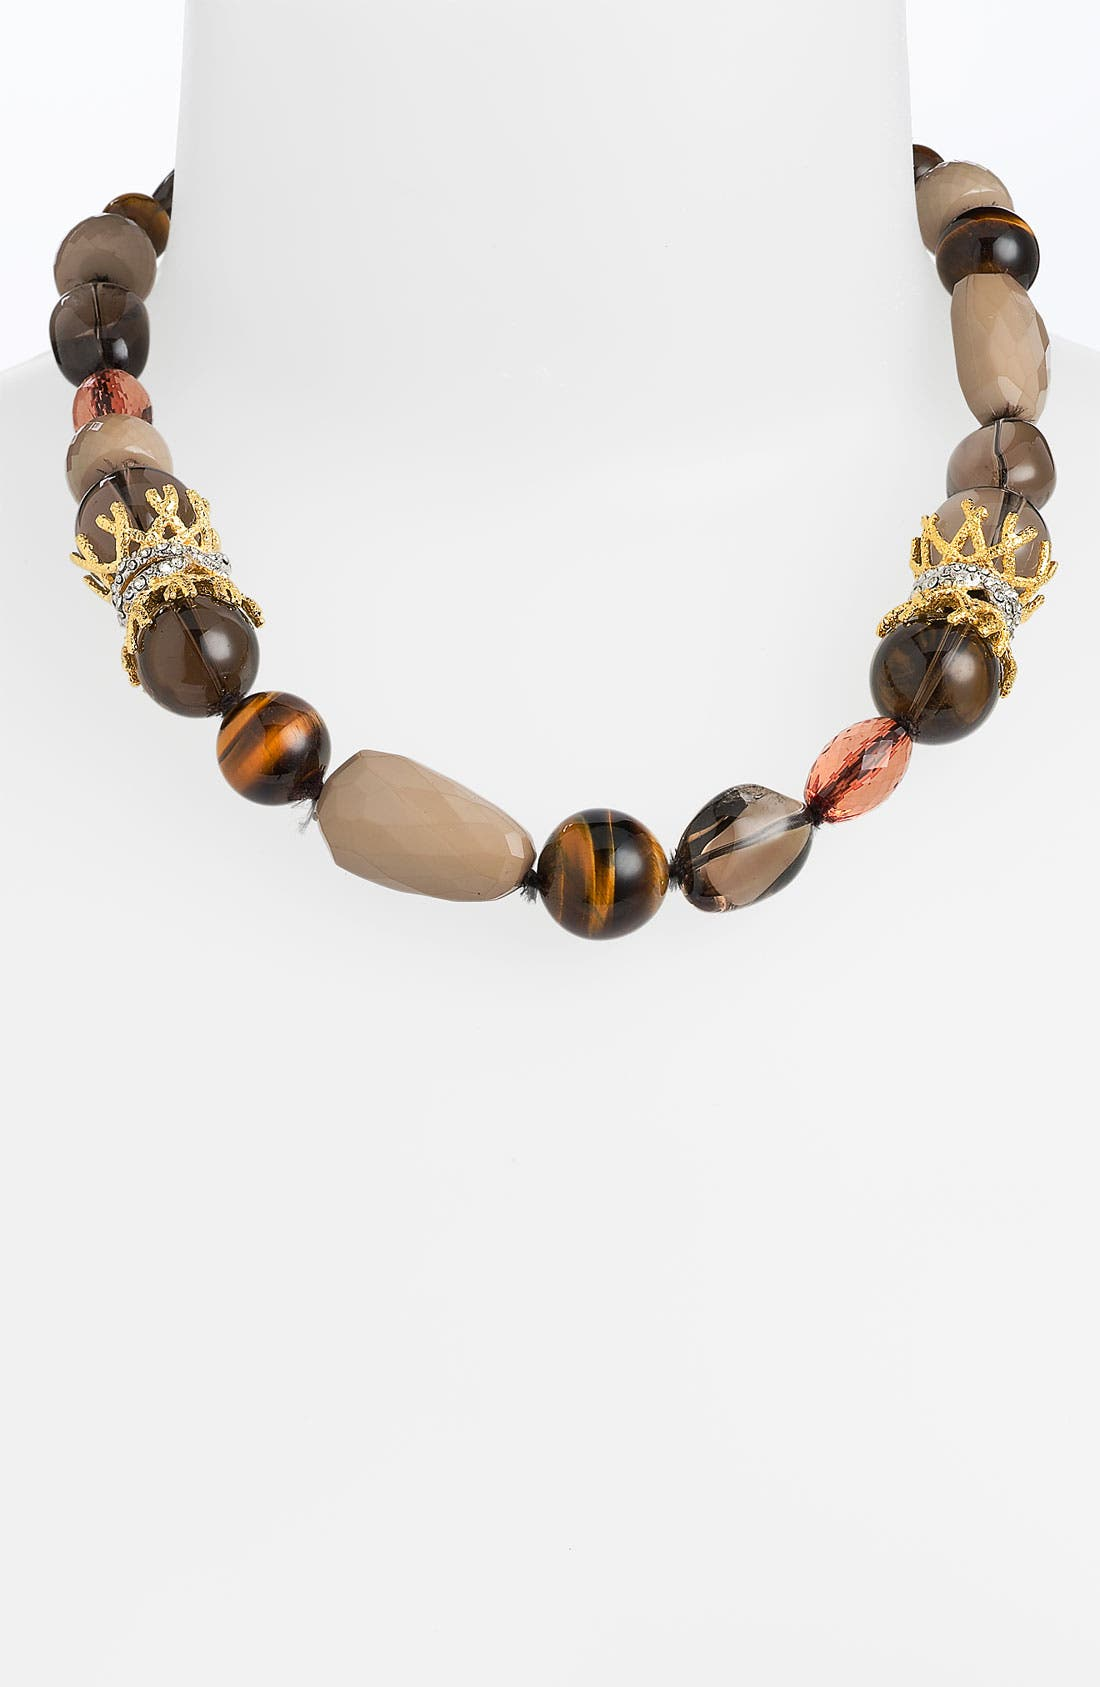 Alternate Image 1 Selected - Alexis Bittar 'Elements' Pavé Crown Station Necklace (Nordstrom Exclusive)